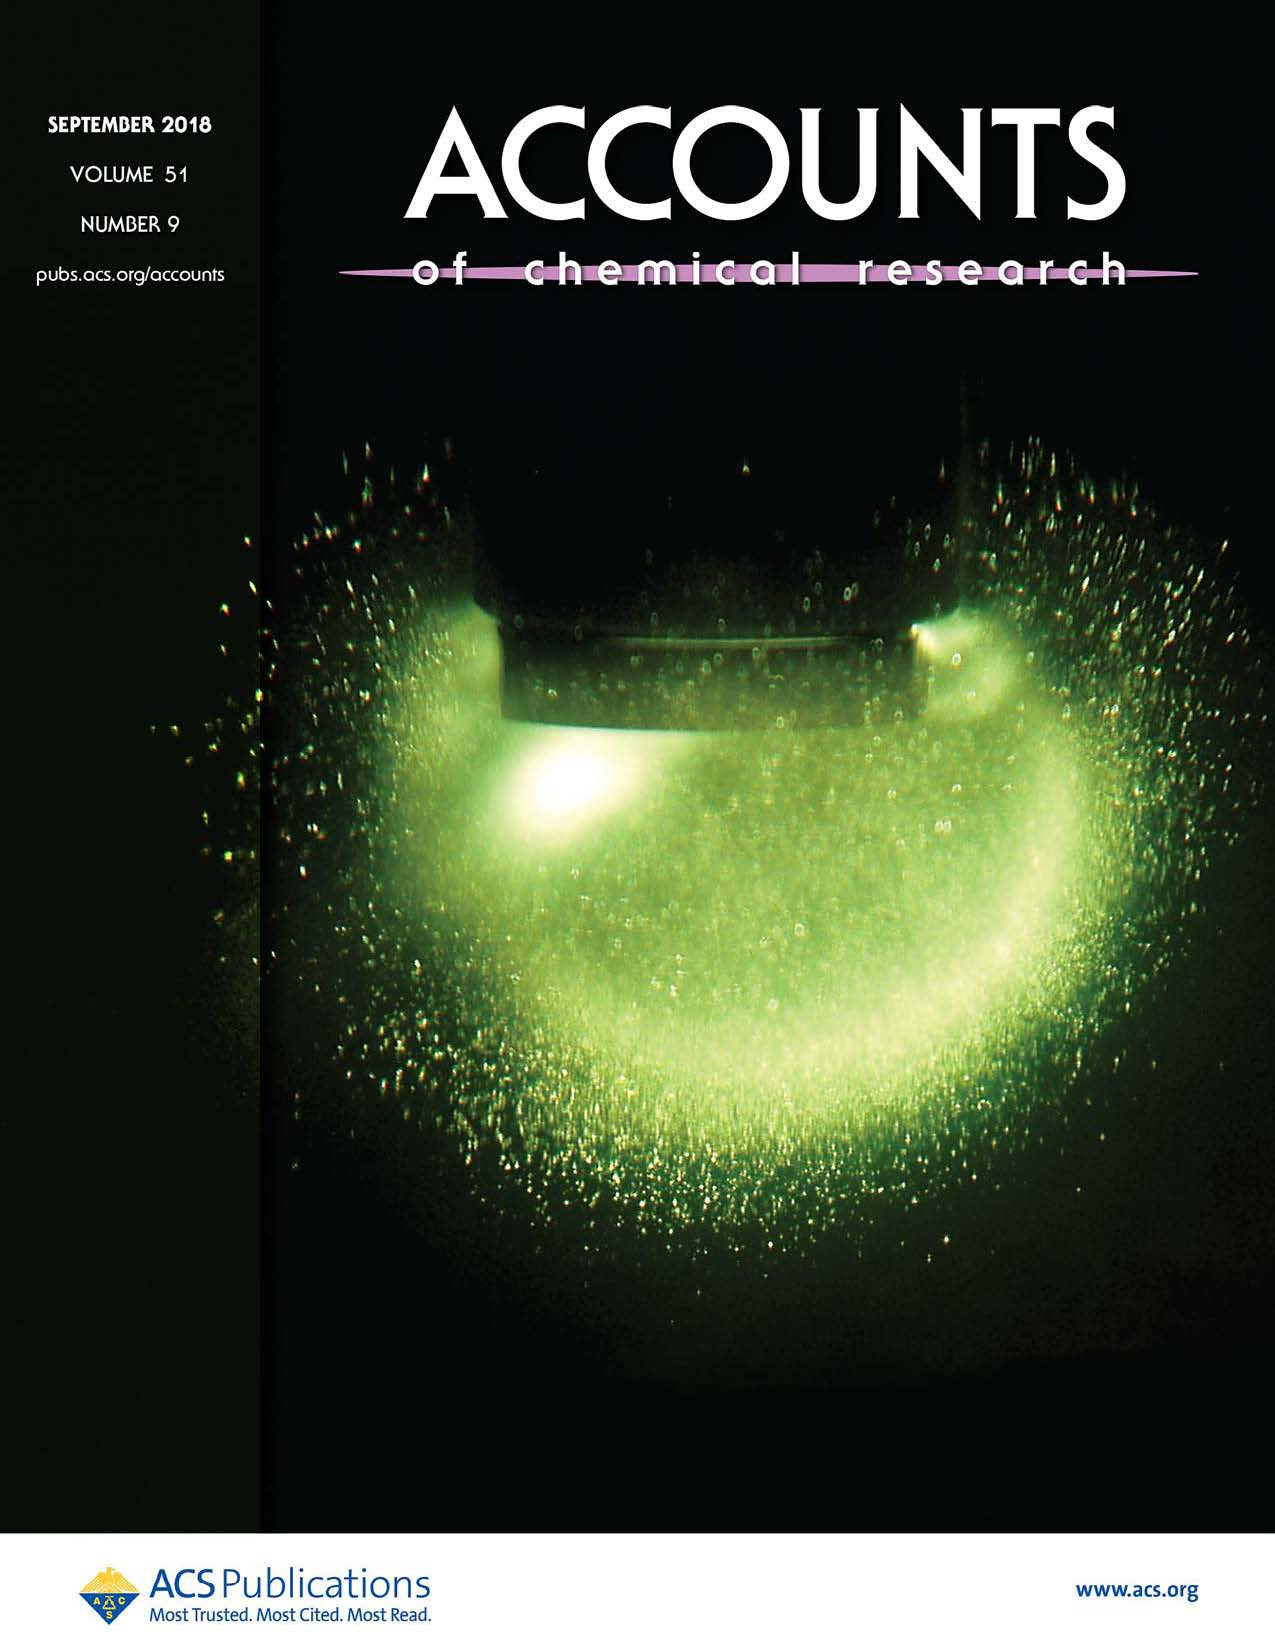 Accounts Cover 2018